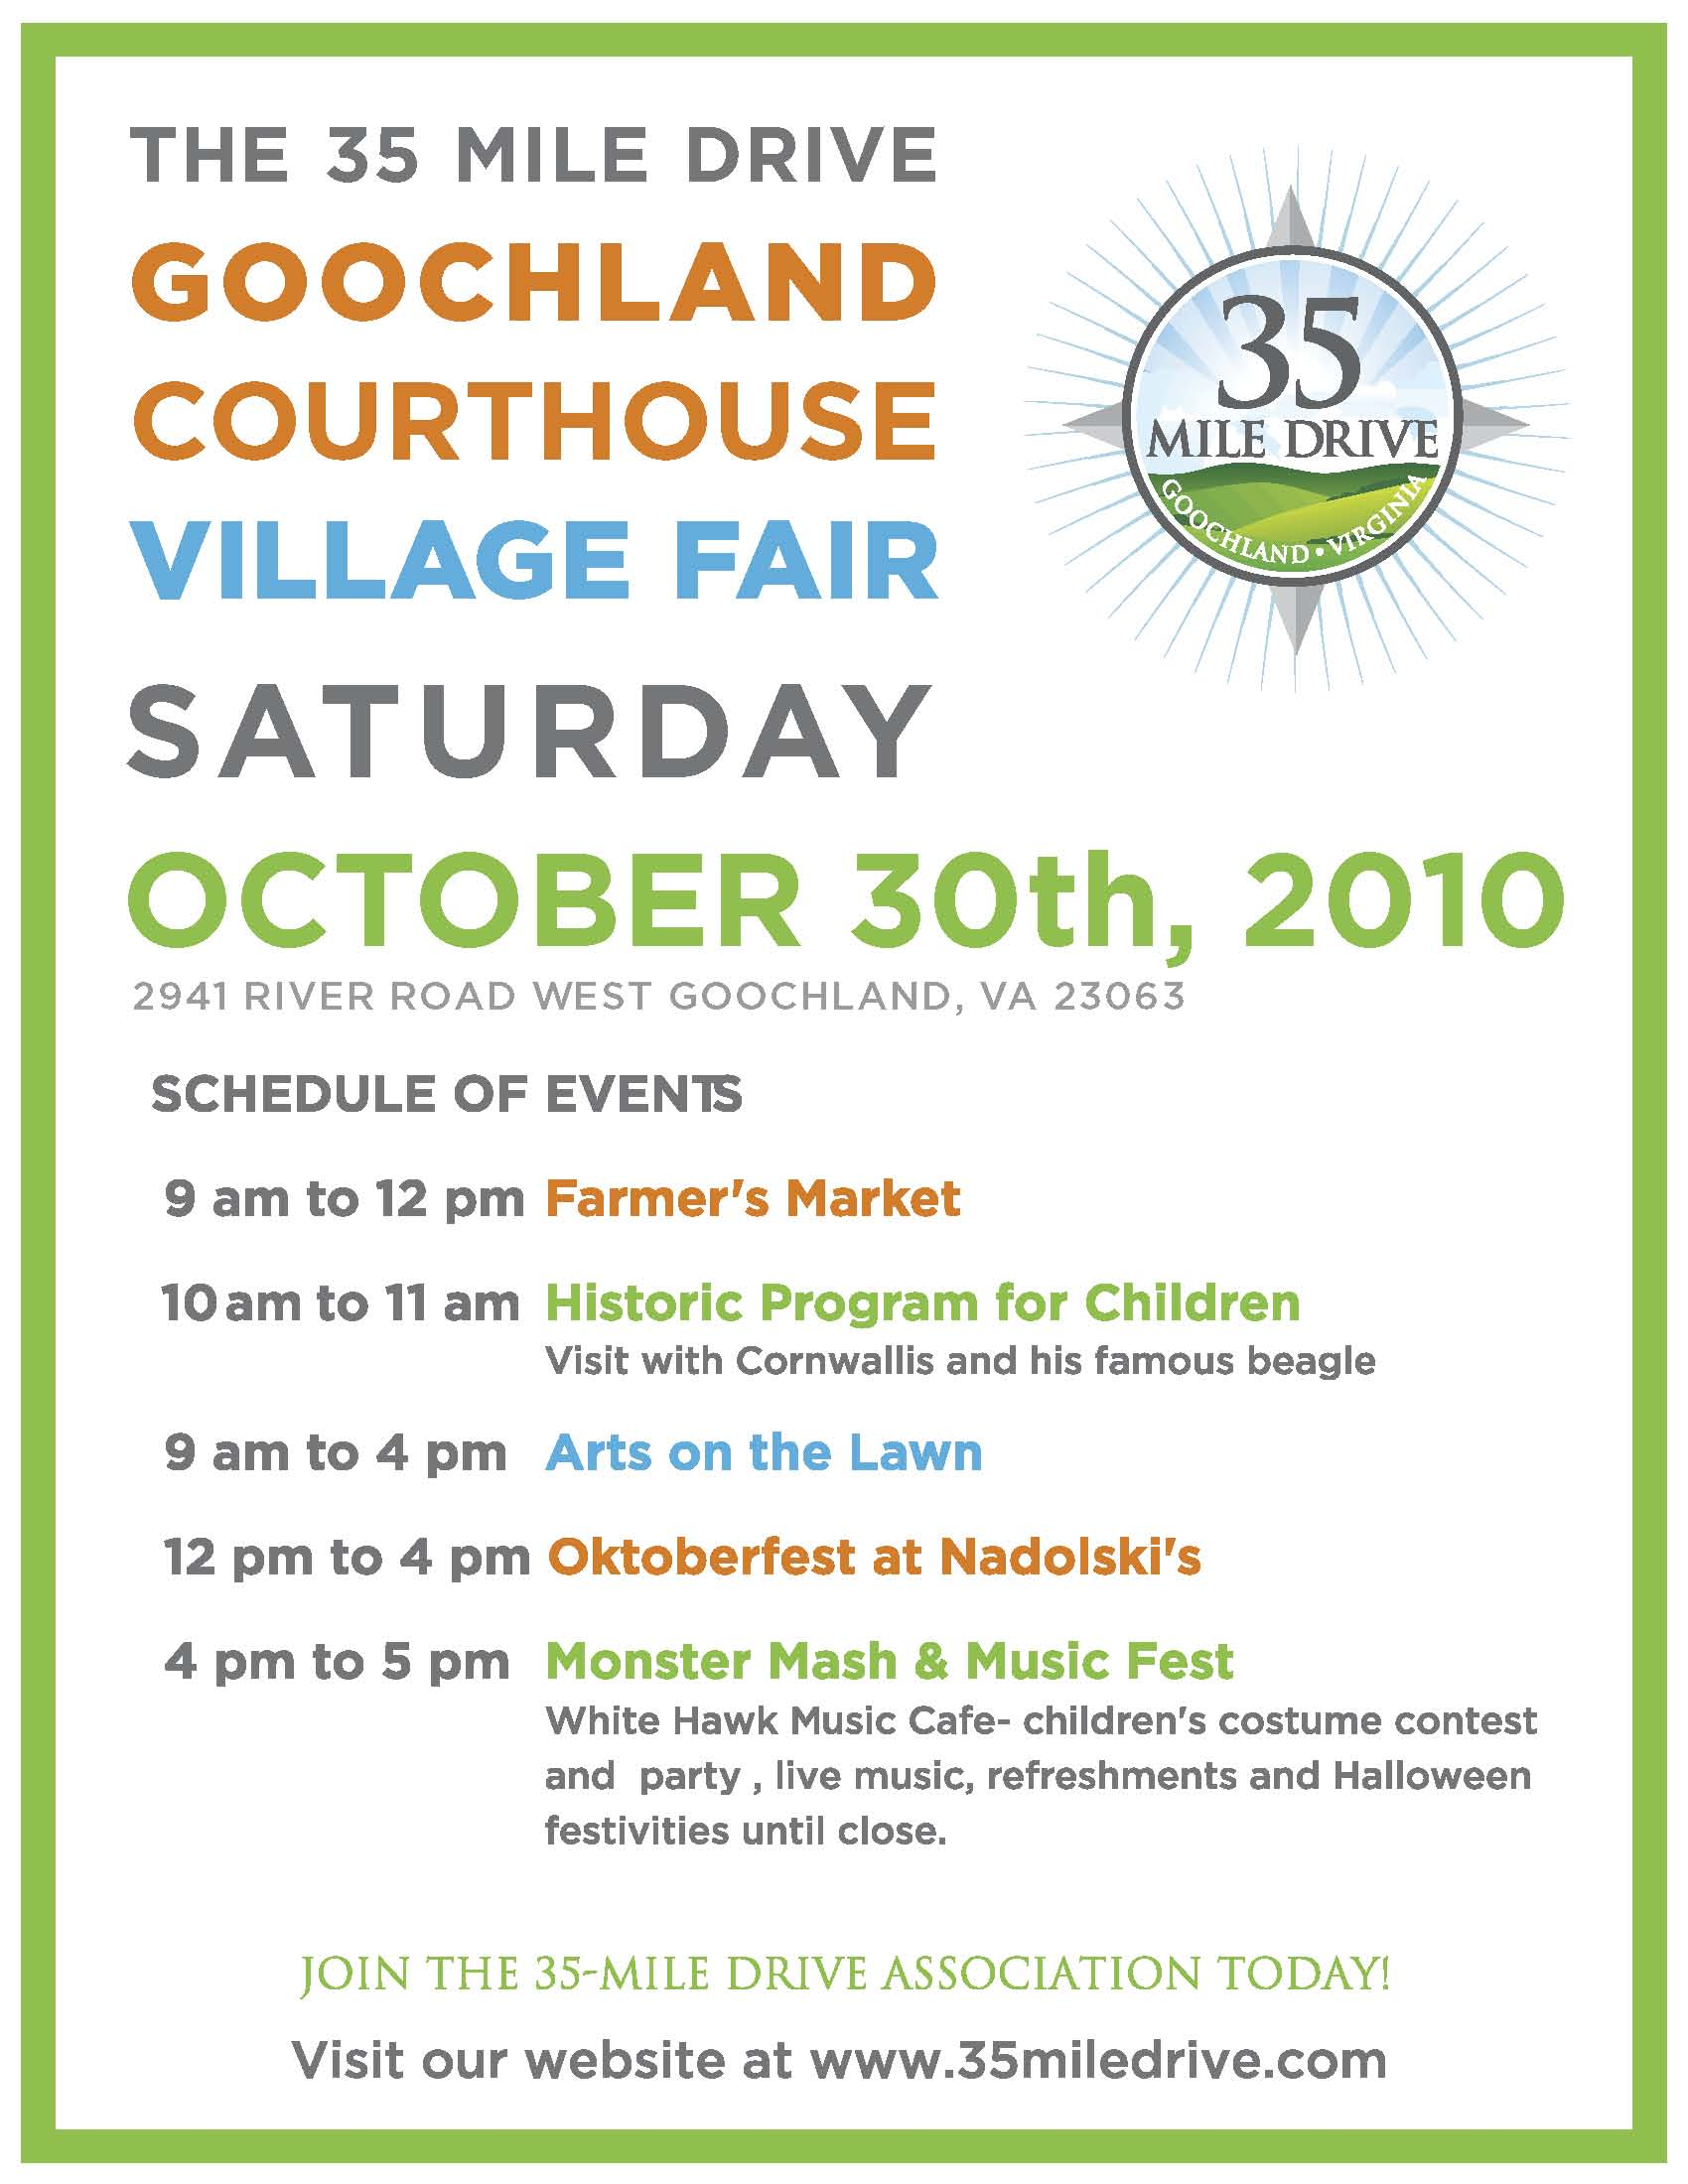 a village fair Come develop & launch a safety plan for your family this event  was planned in loving memory of michael lafave.